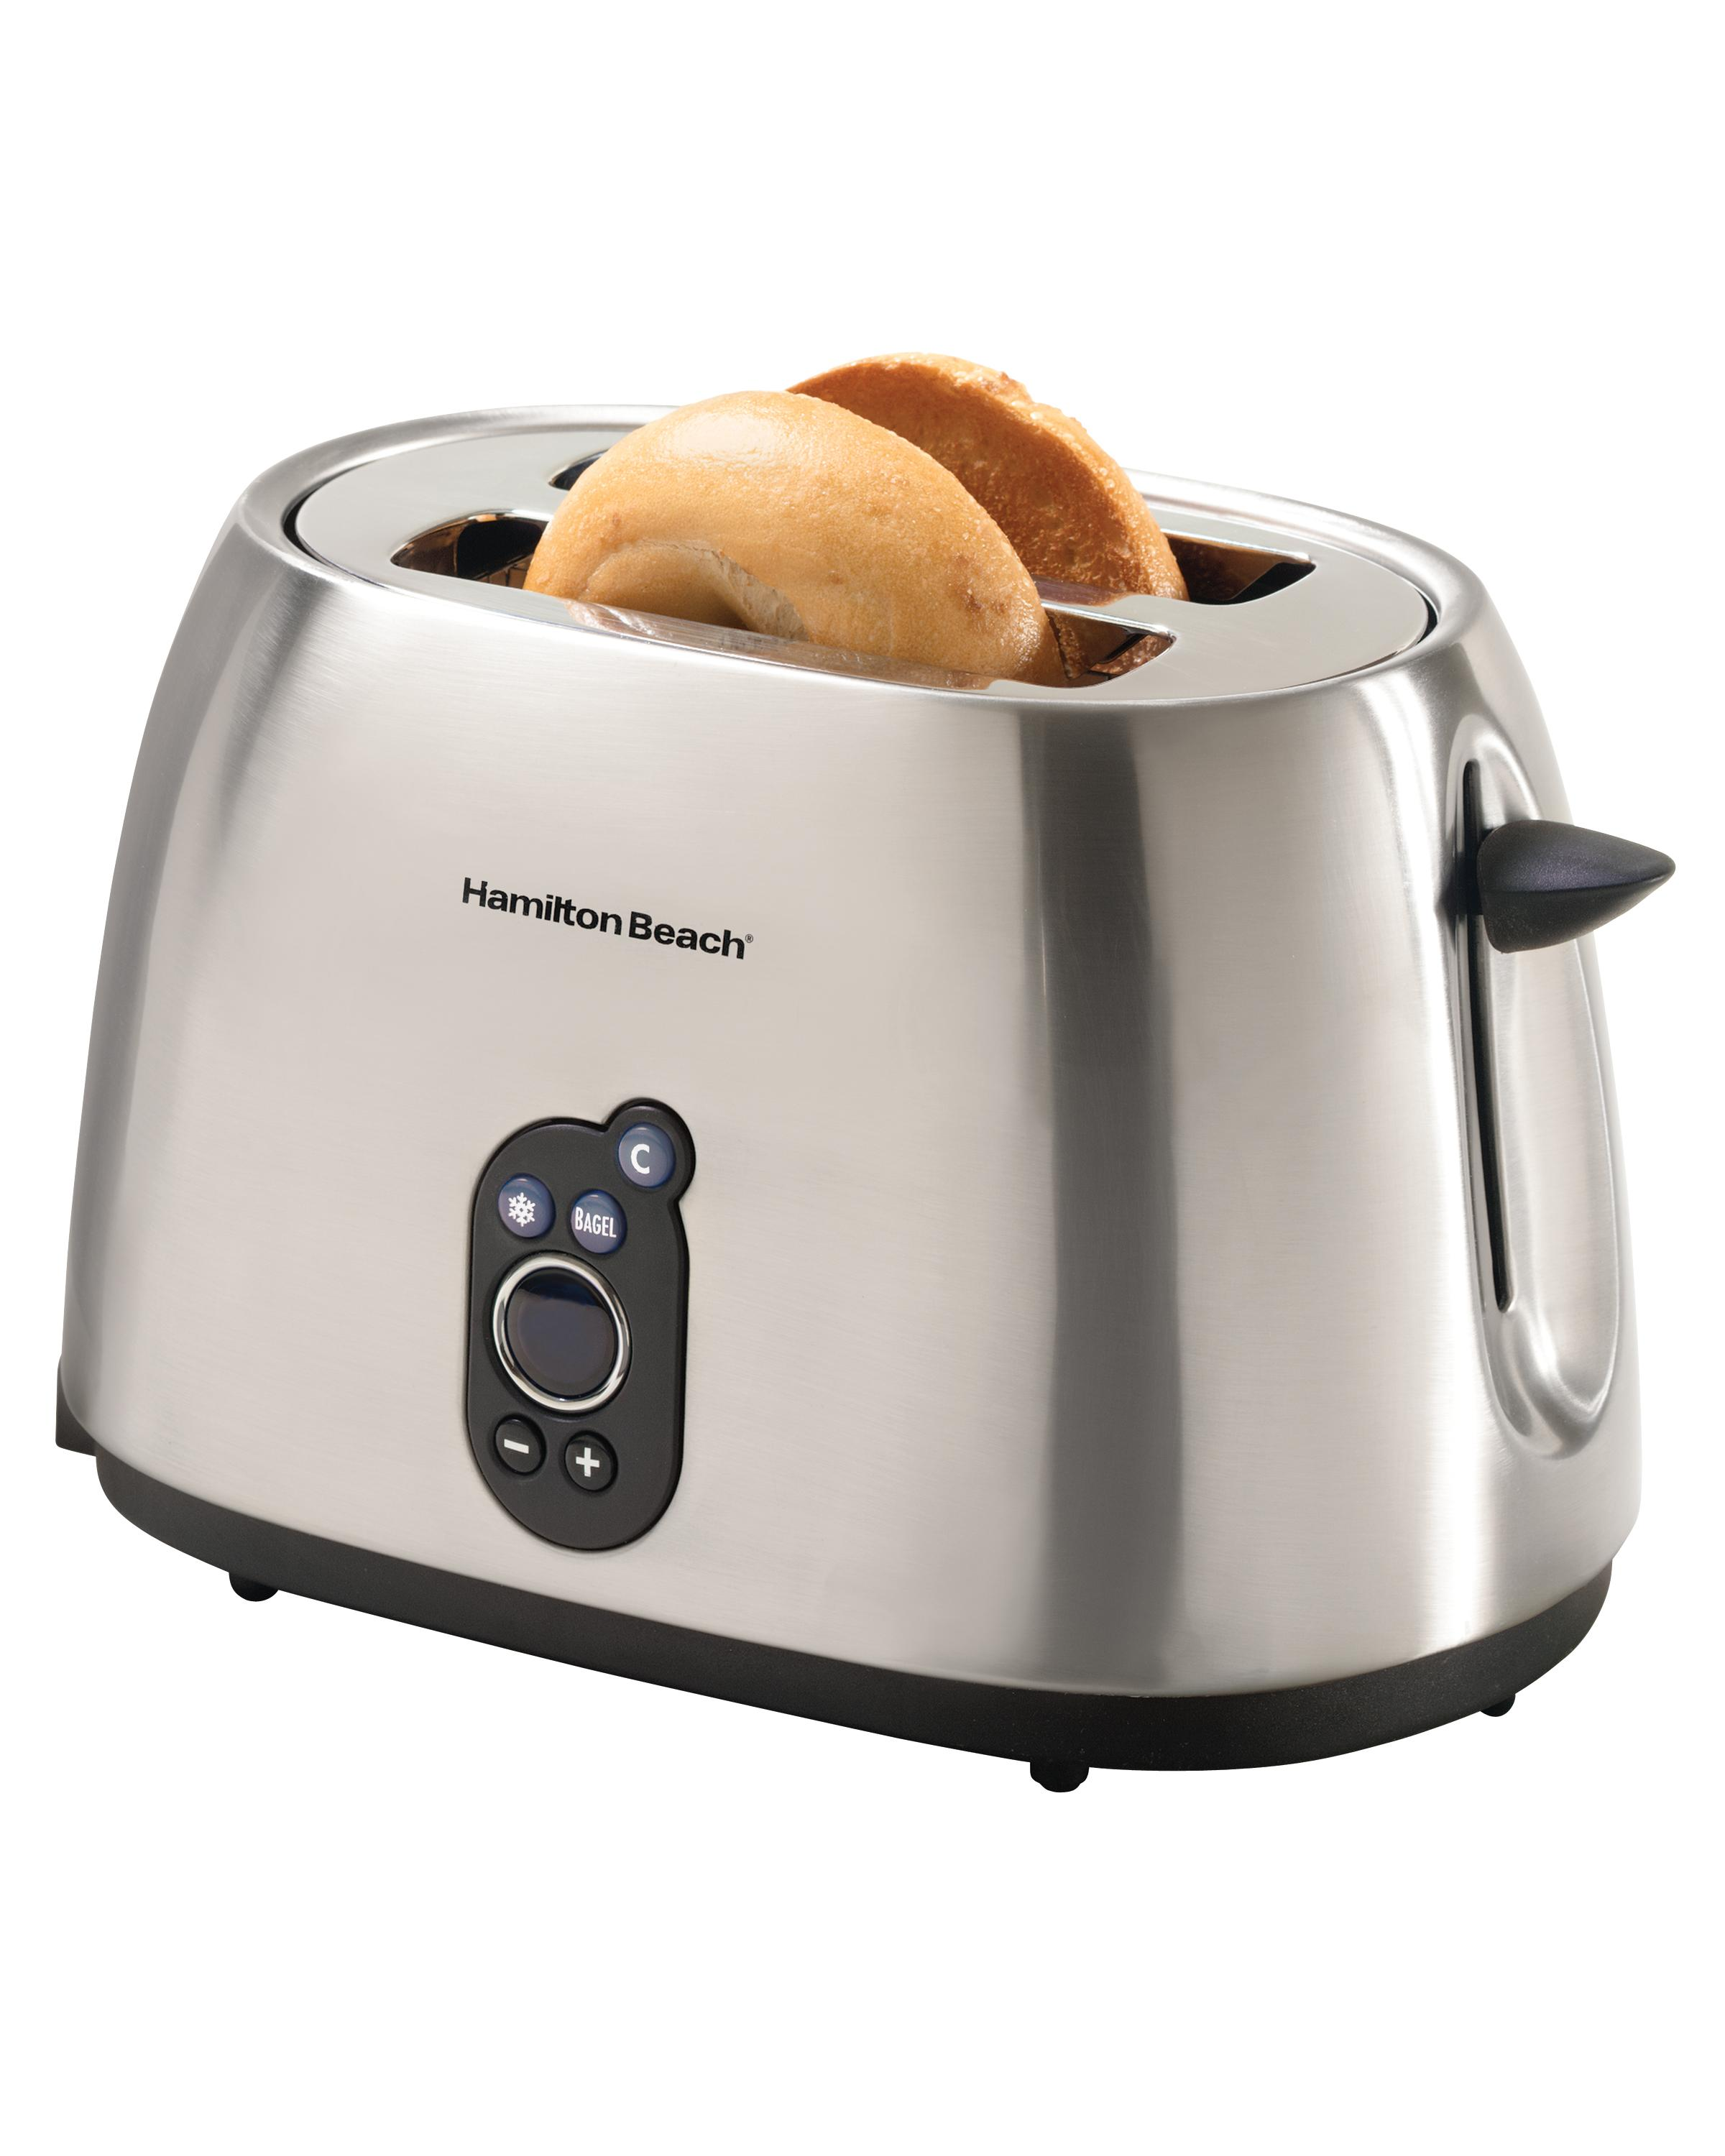 Amazon.com: Hamilton Beach 22502 Digital 2-Slice Toaster ...